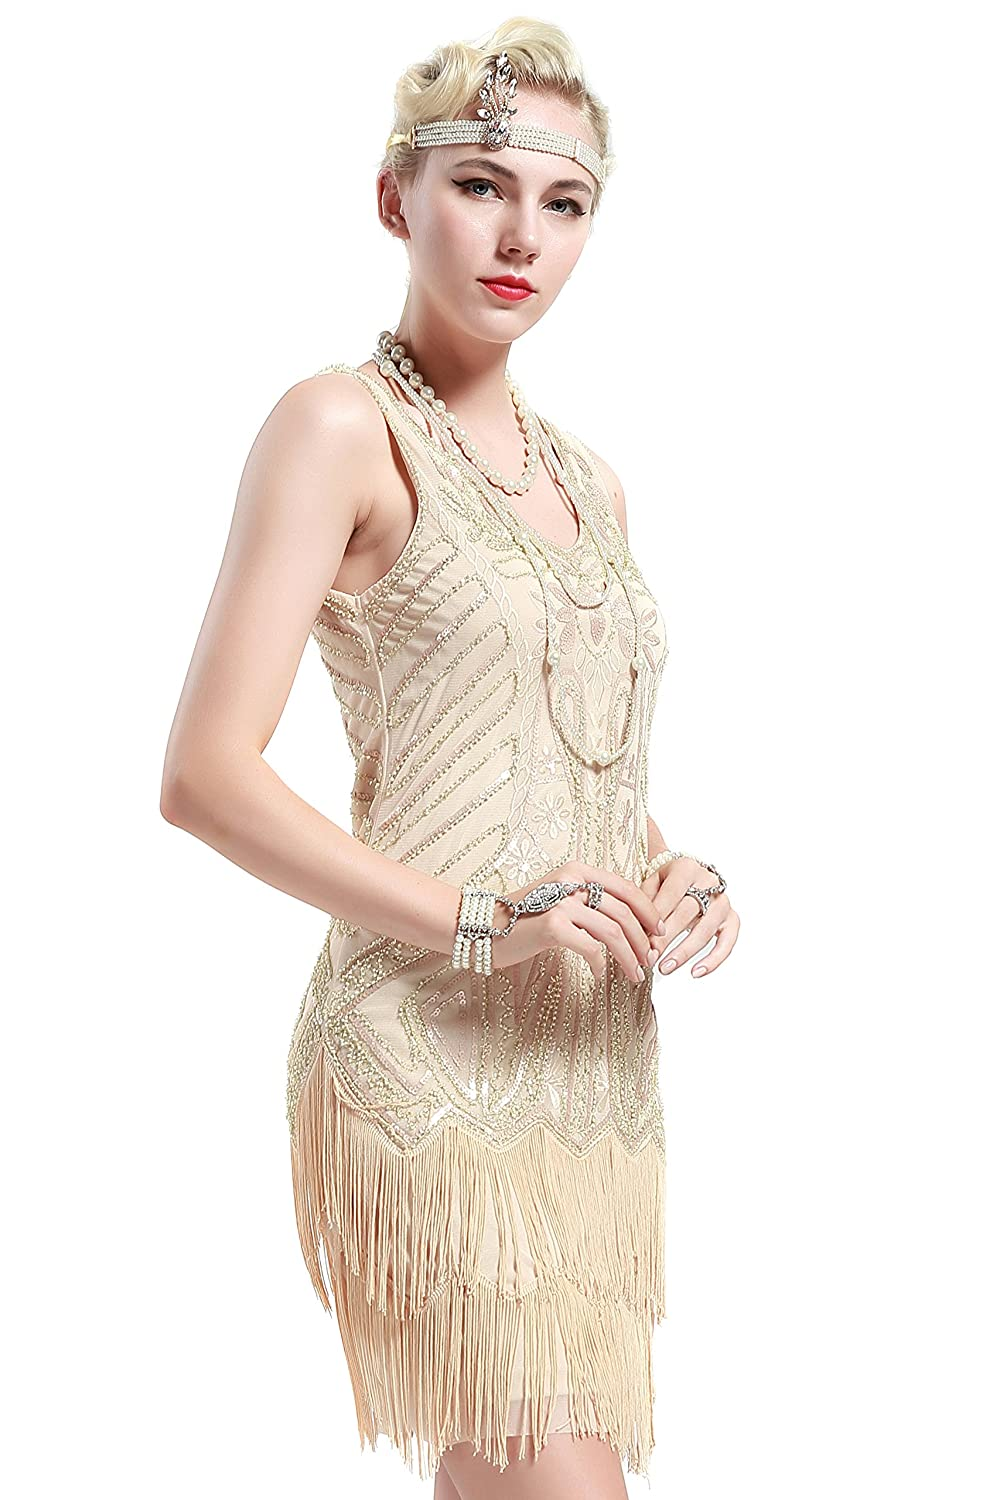 Roaring 20s Costumes- Flapper Costumes, Gangster Costumes Flapper Dresses 1920s V Neck Beaded Fringed Great Gatsby Dress $28.99 AT vintagedancer.com